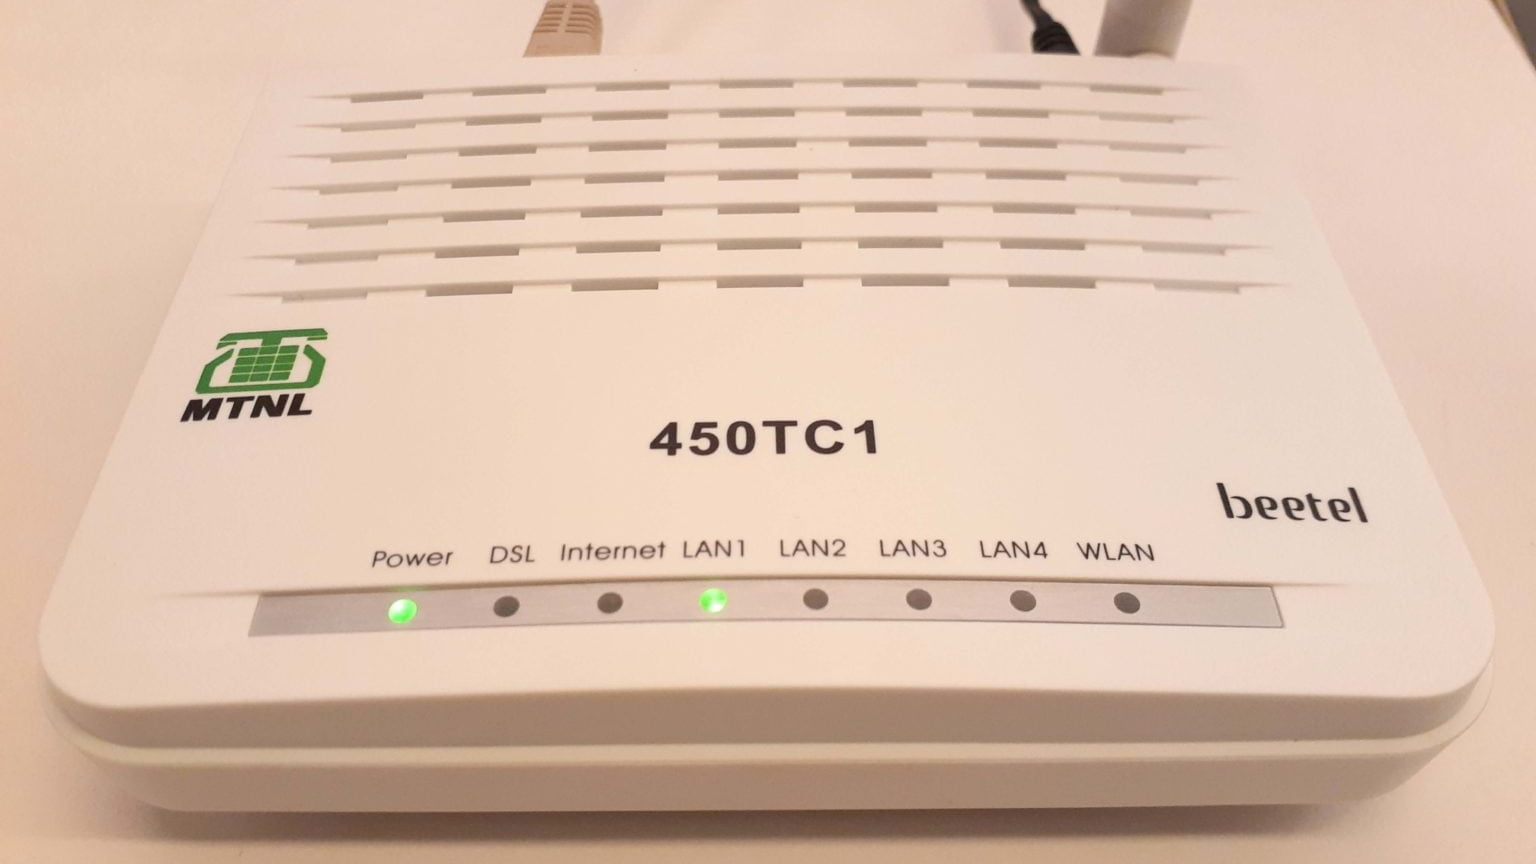 MTNL Router